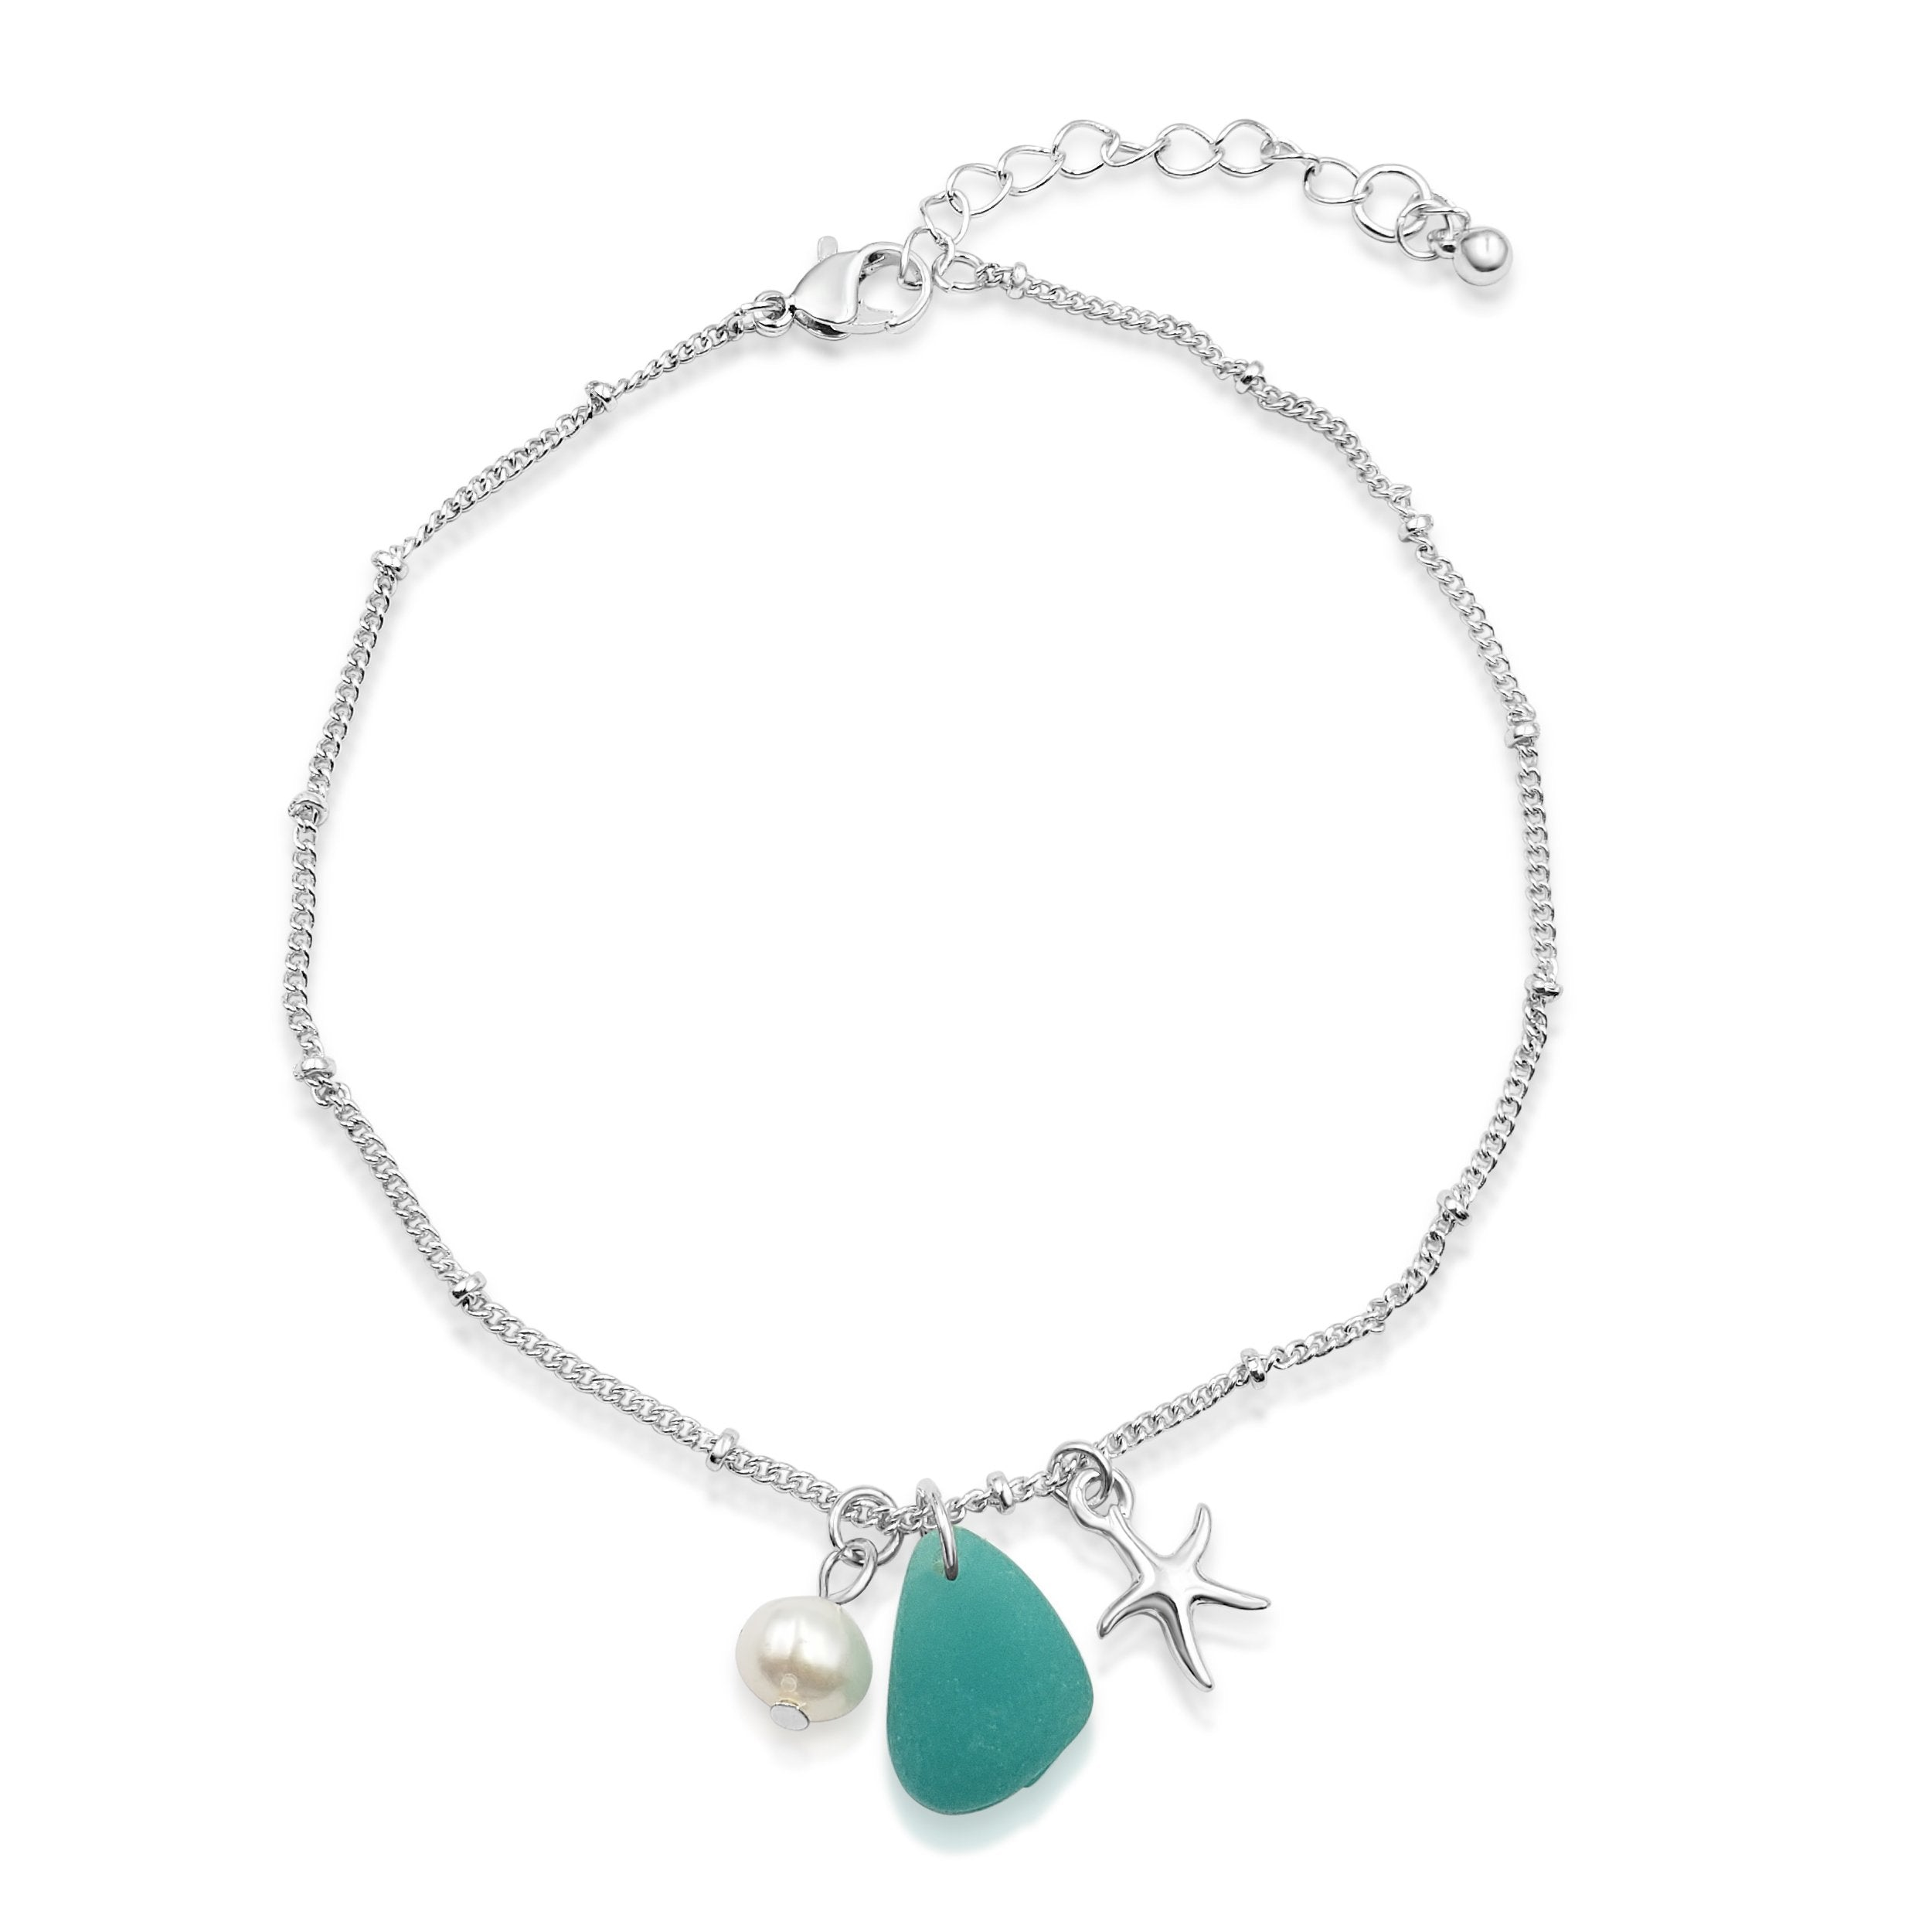 Teardrop Seaglass and SeaStar Anklet